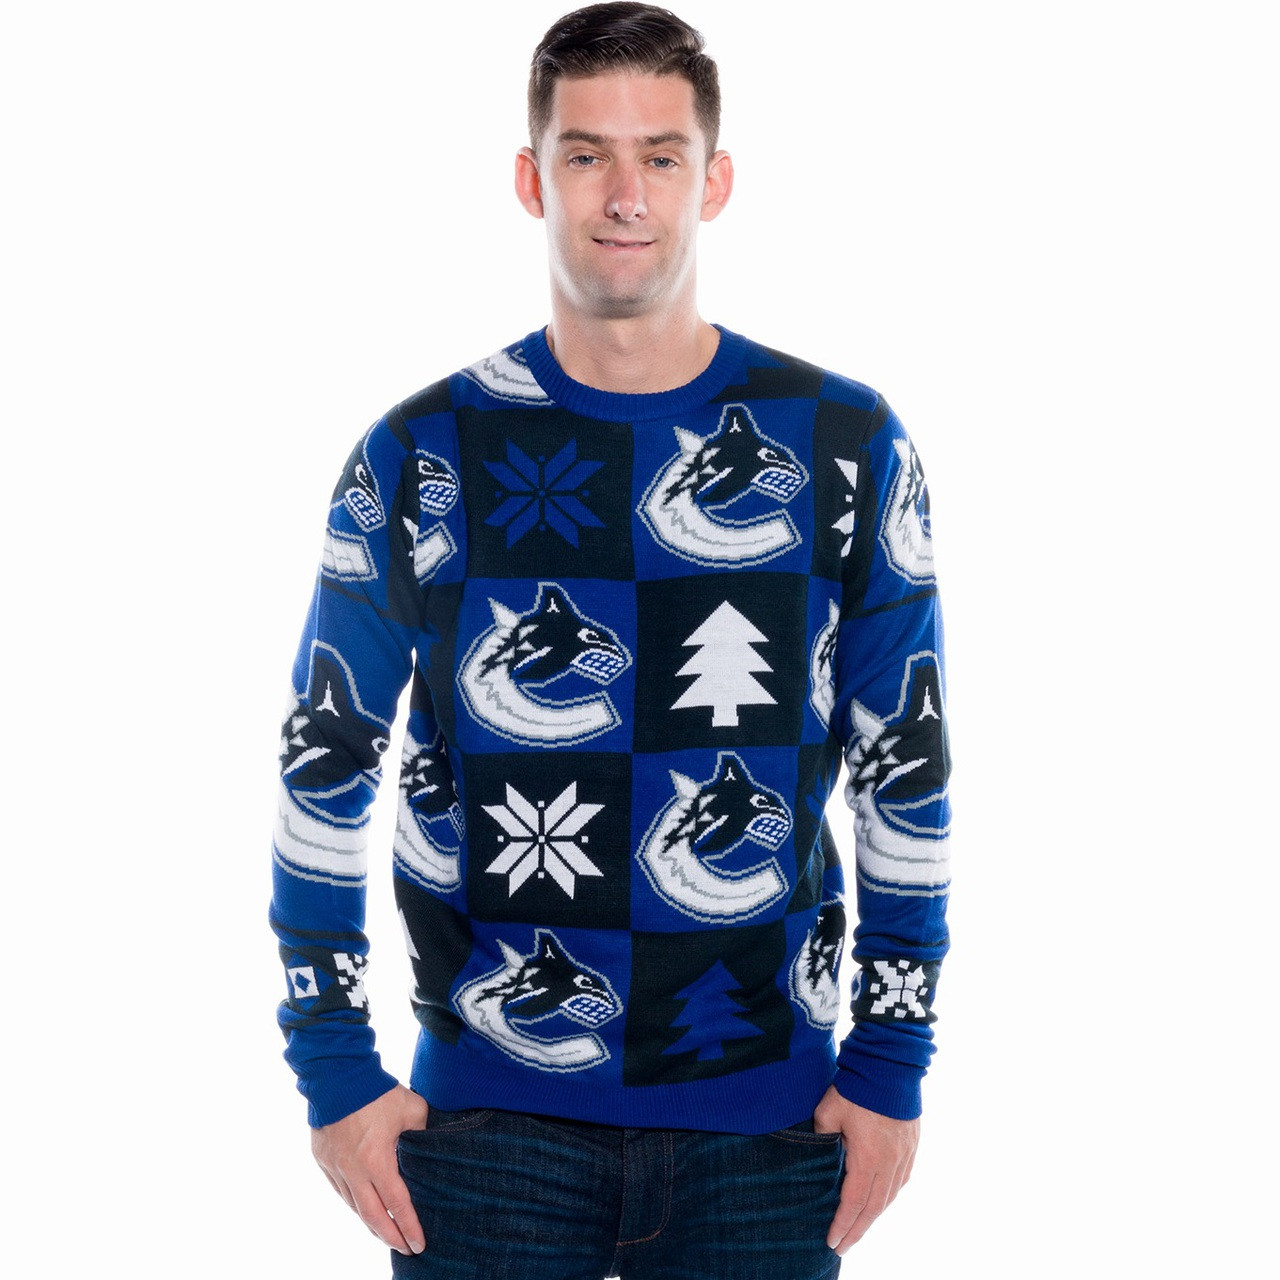 trailer park boys christmas sweaters - wlrtradio.com